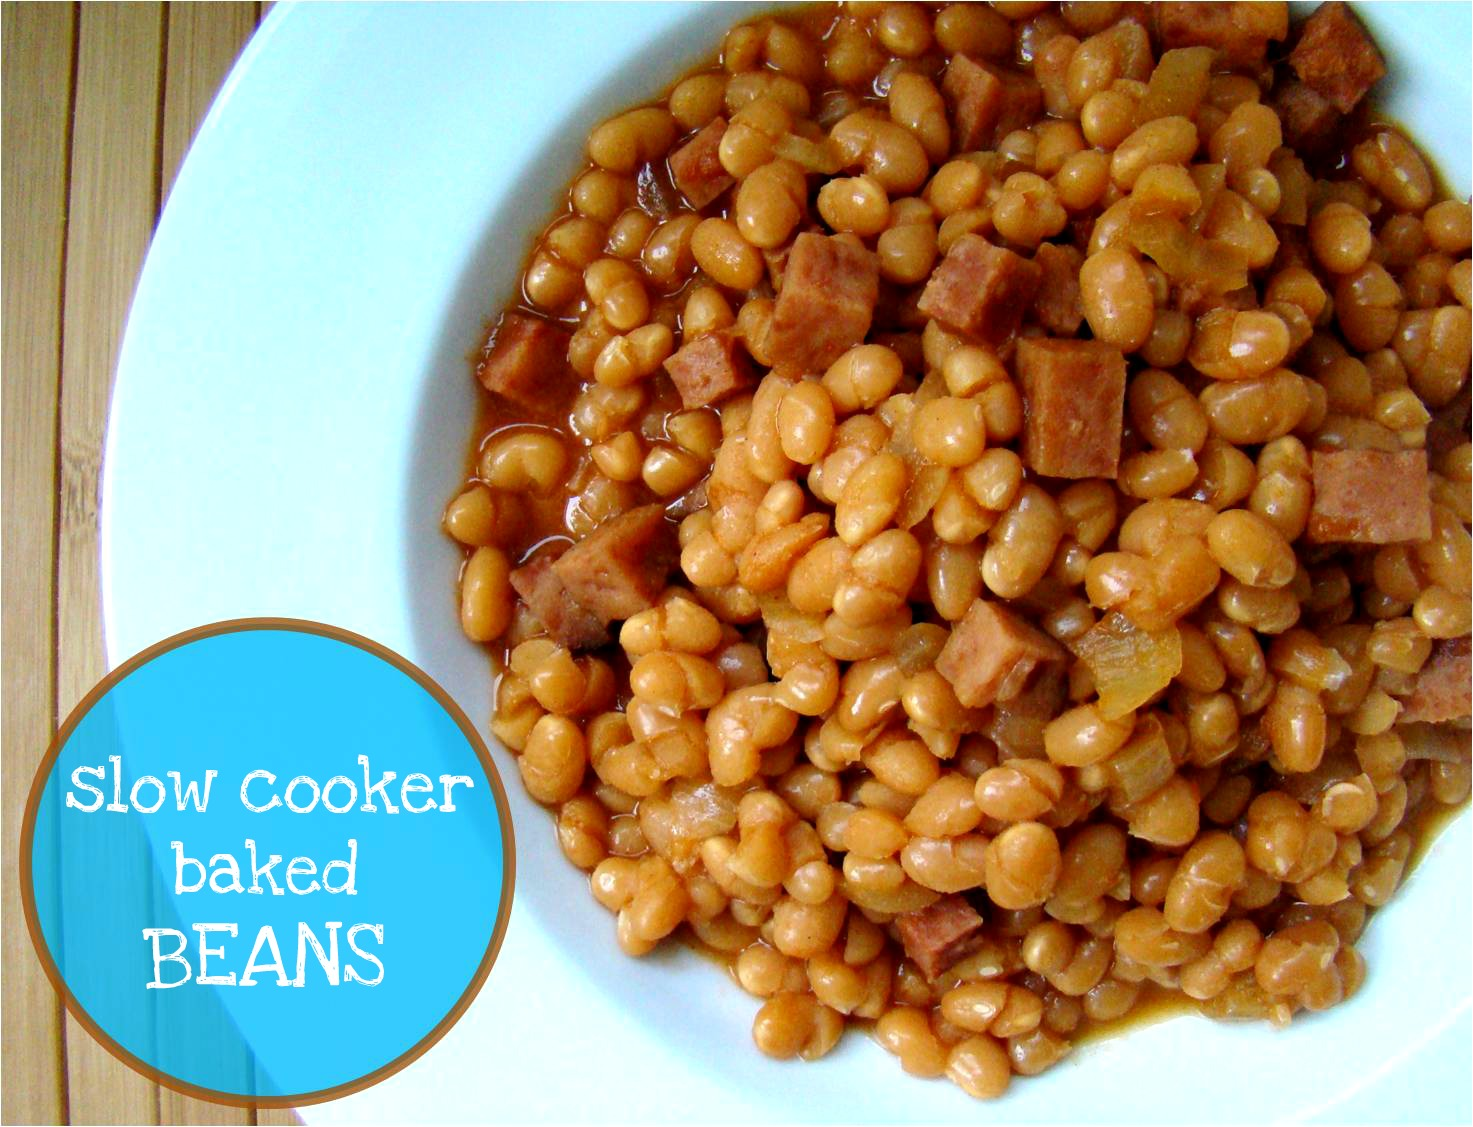 Family Feedbag: Slow cooker baked beans with ham